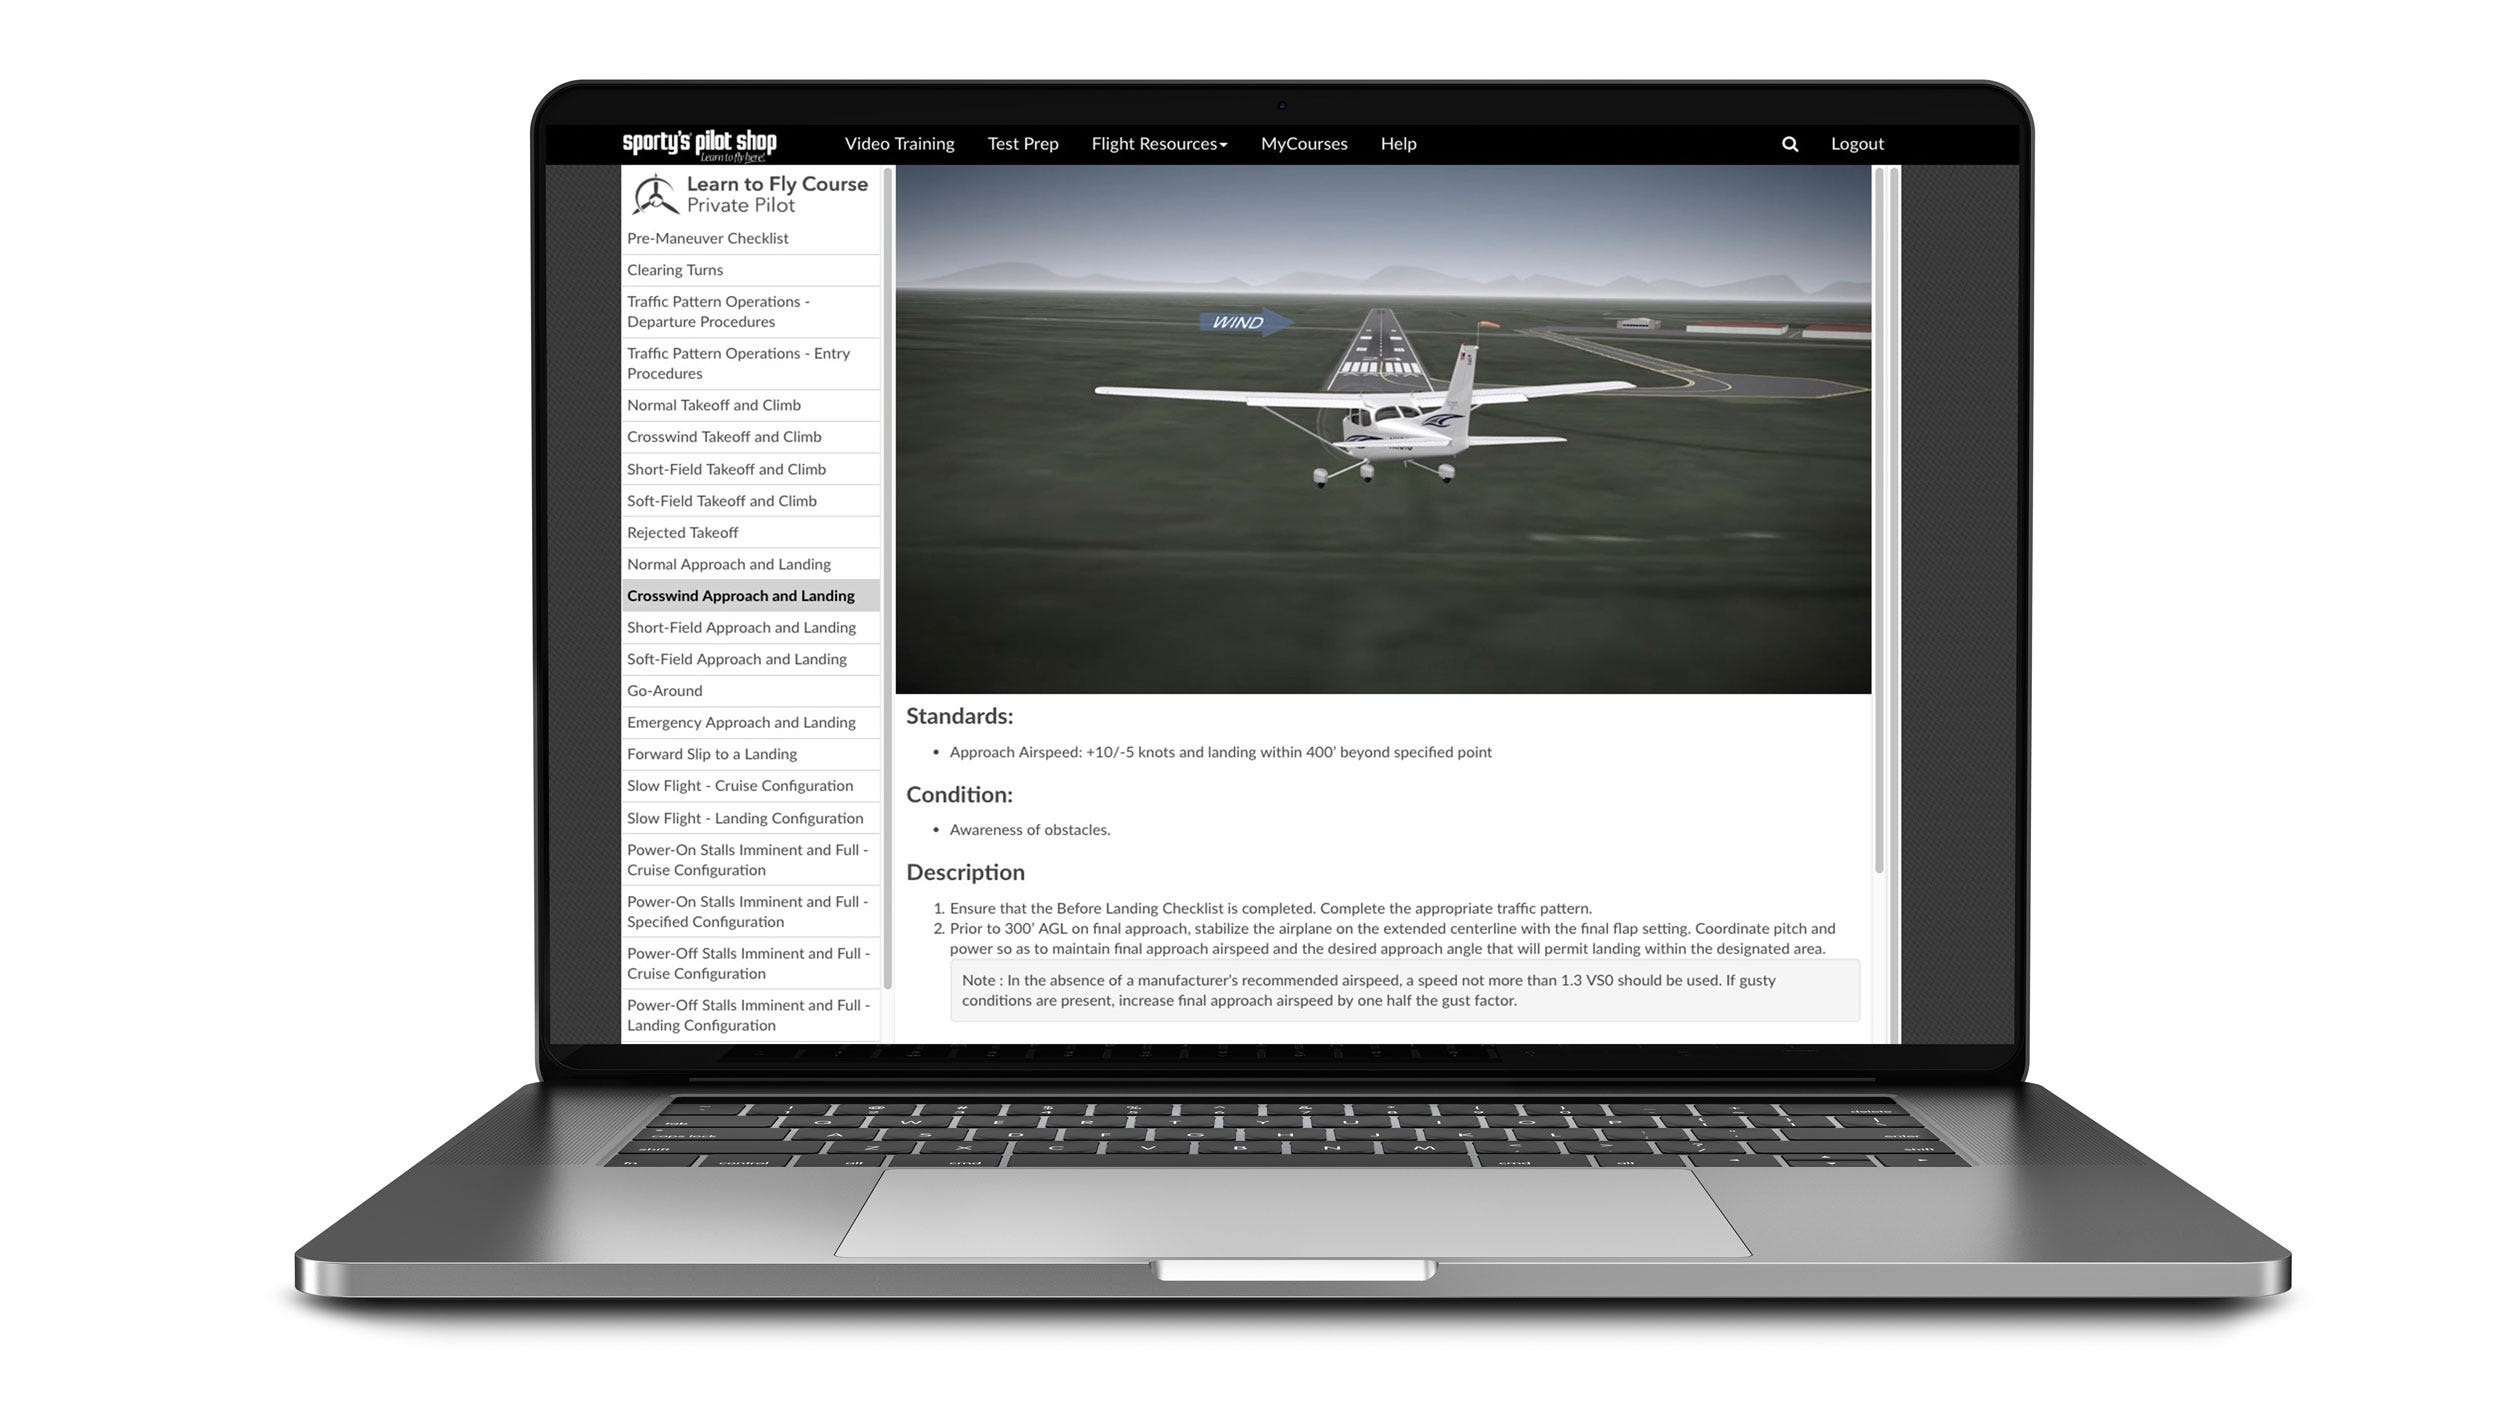 d59ffb31dd7 Learn To Fly Course - Private Pilot Test Prep - from Sporty s Pilot Shop